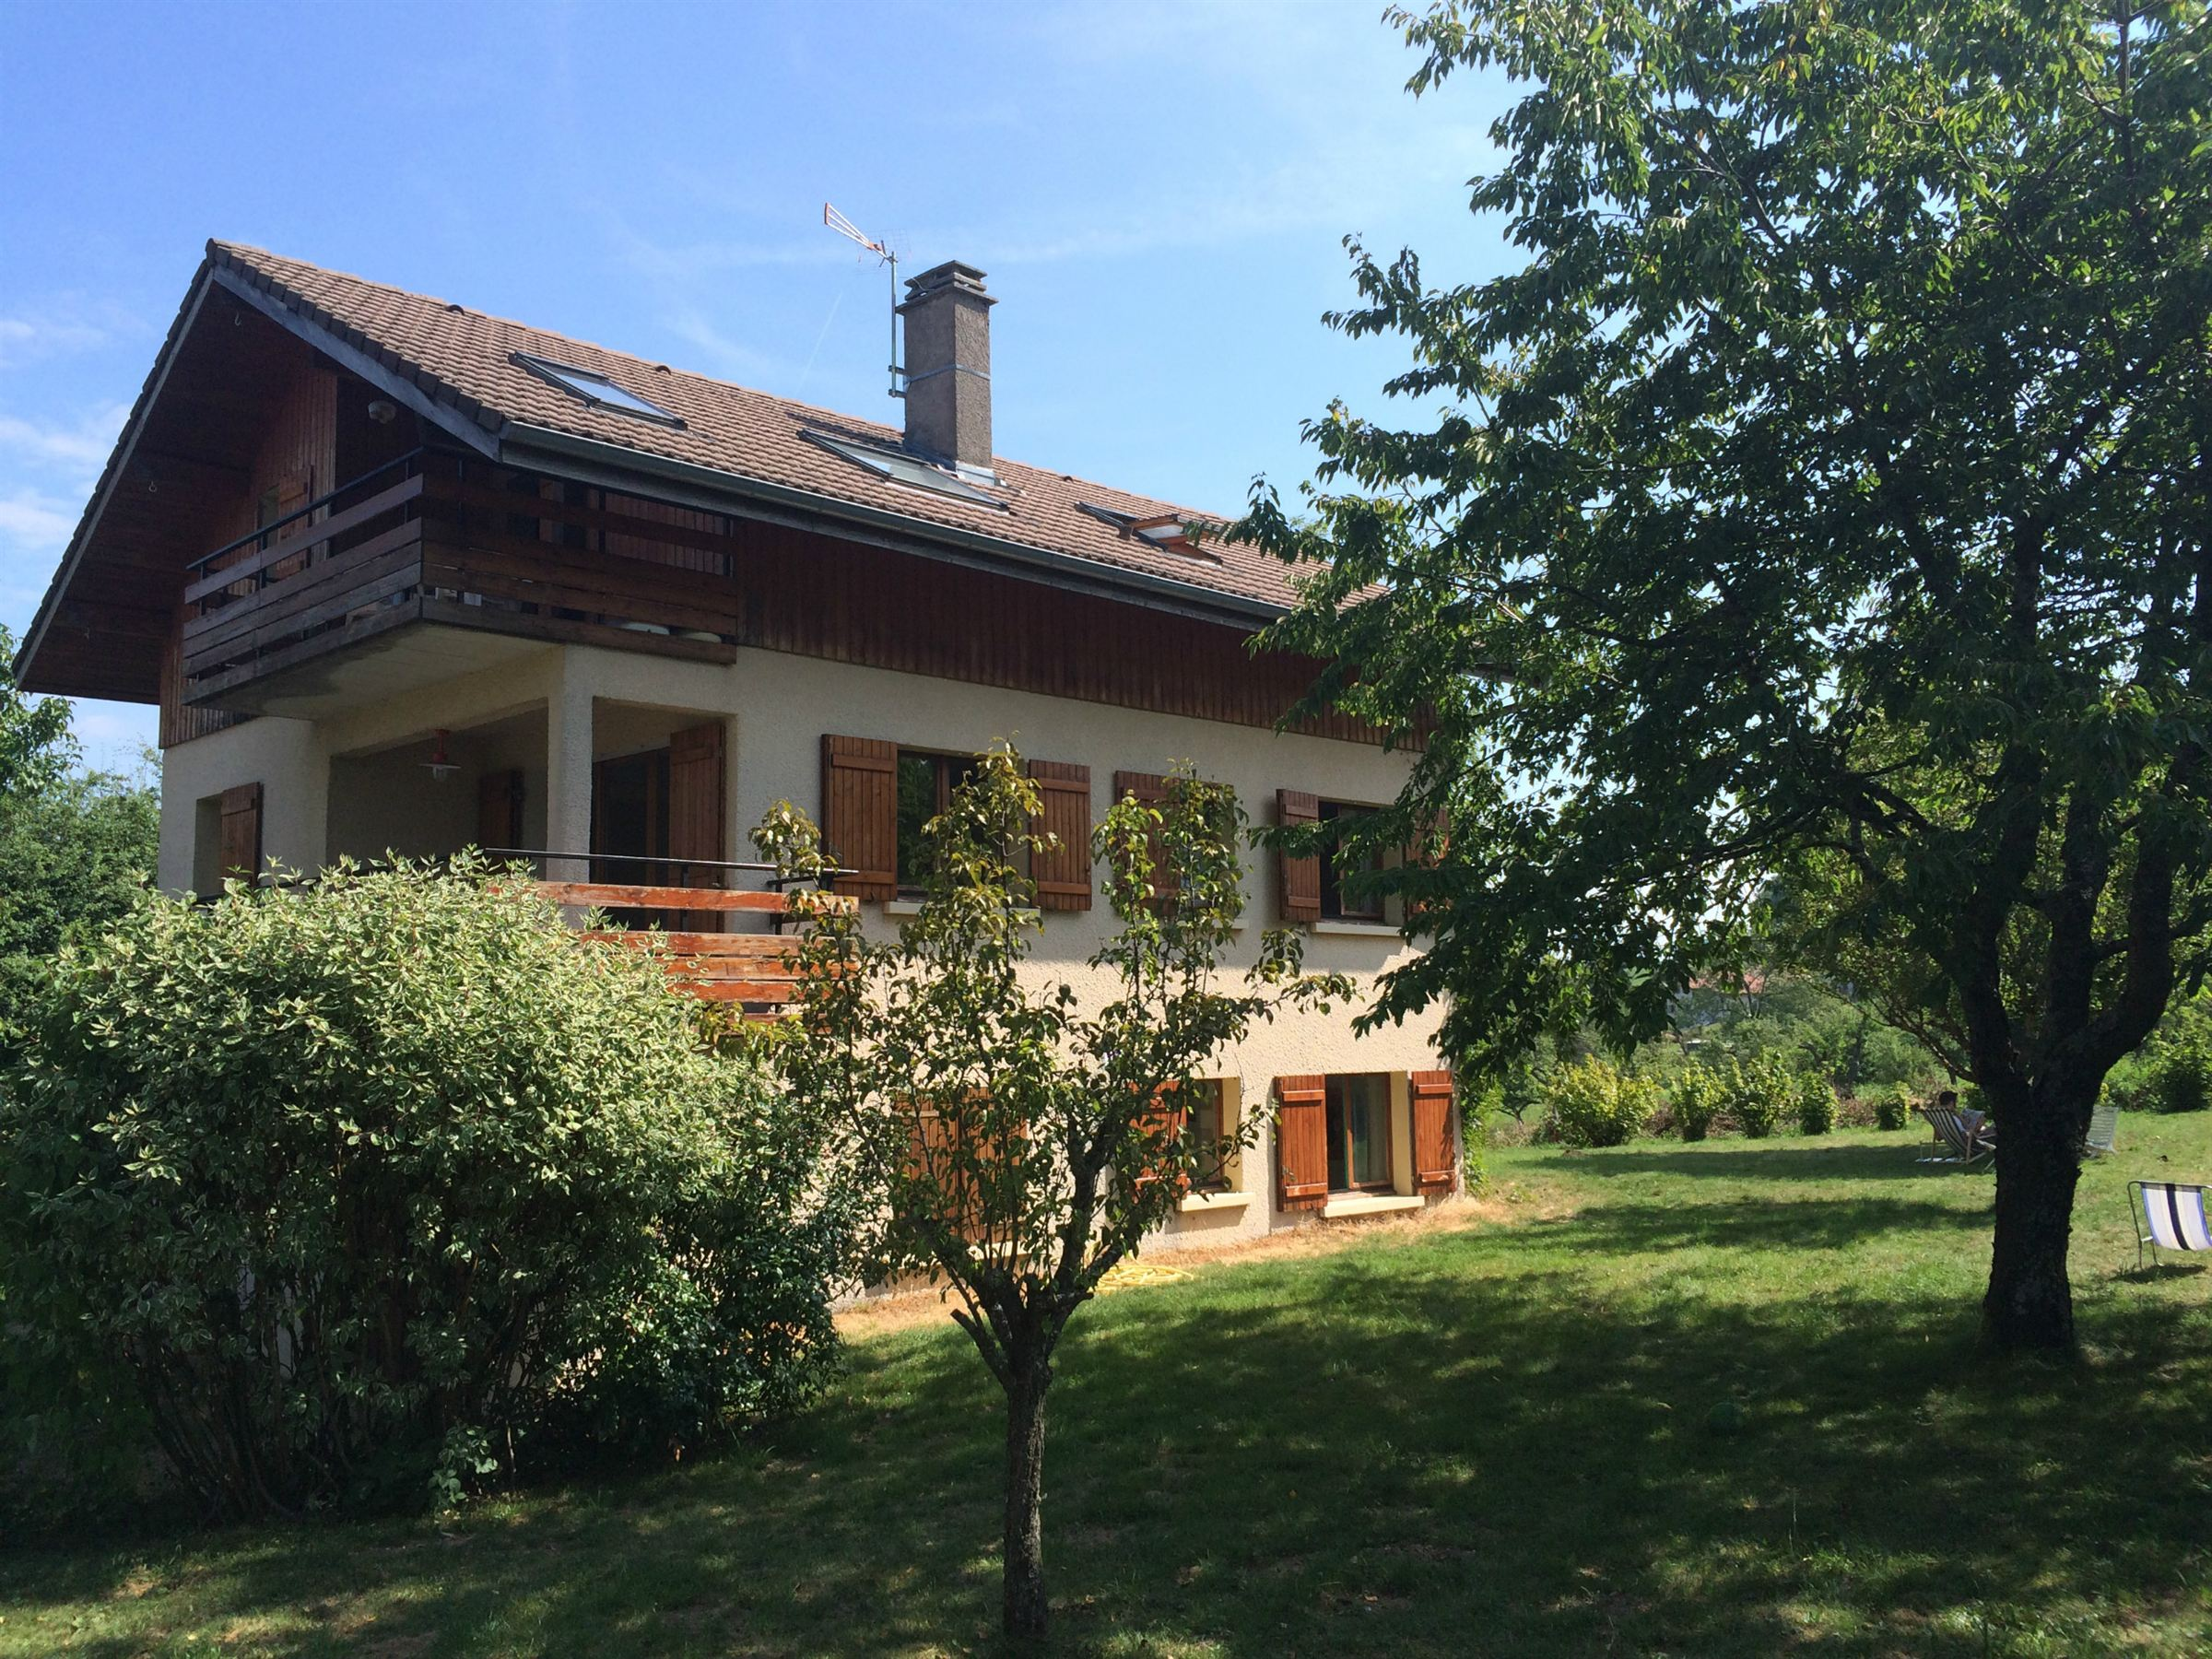 Single Family Home for Sale at house saint paul en chablais Other Rhone-Alpes, Rhone-Alpes, 74500 France